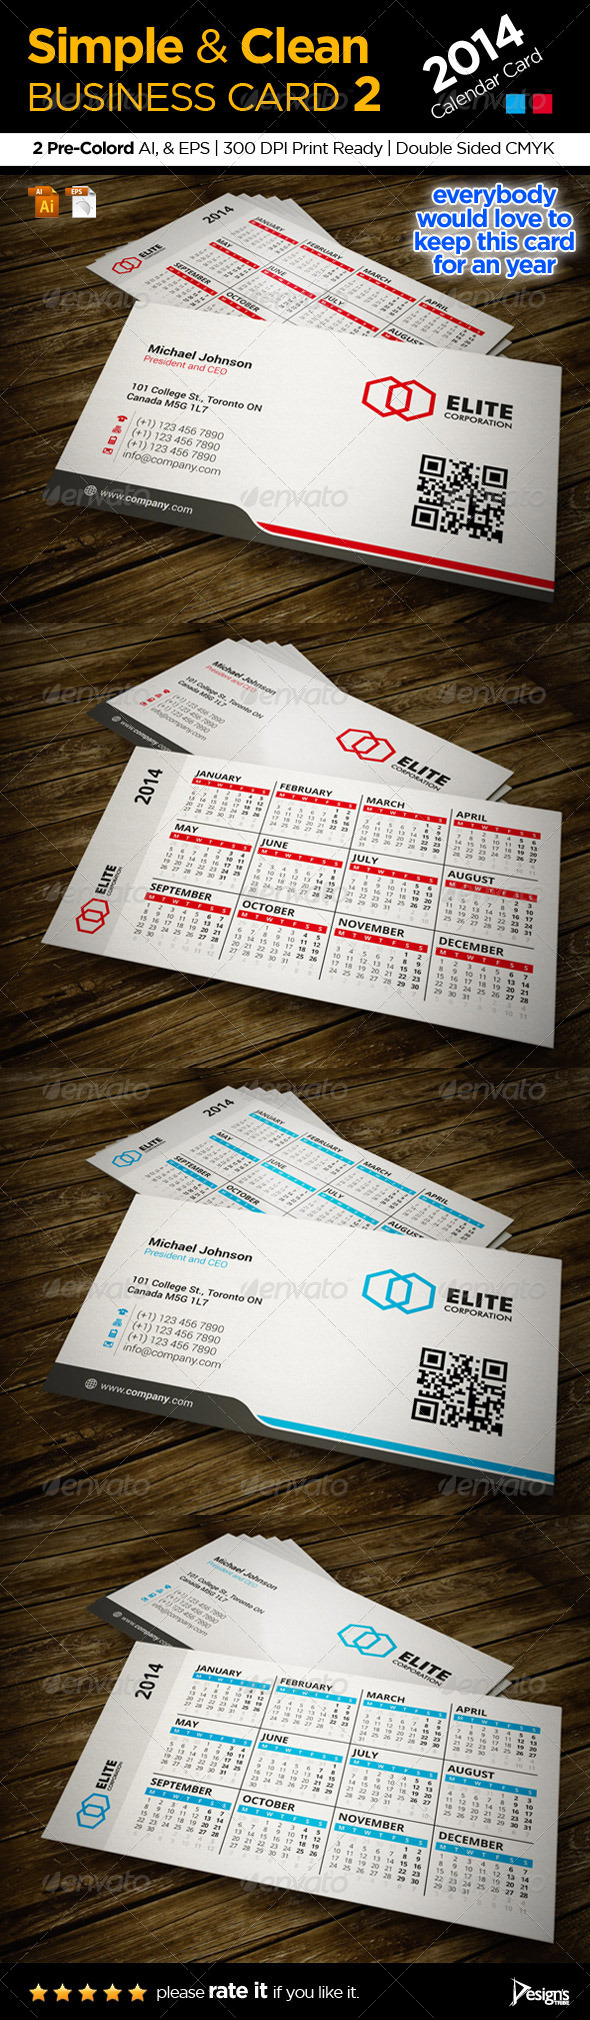 Calendar 2014 Business Card - Corporate Business Cards